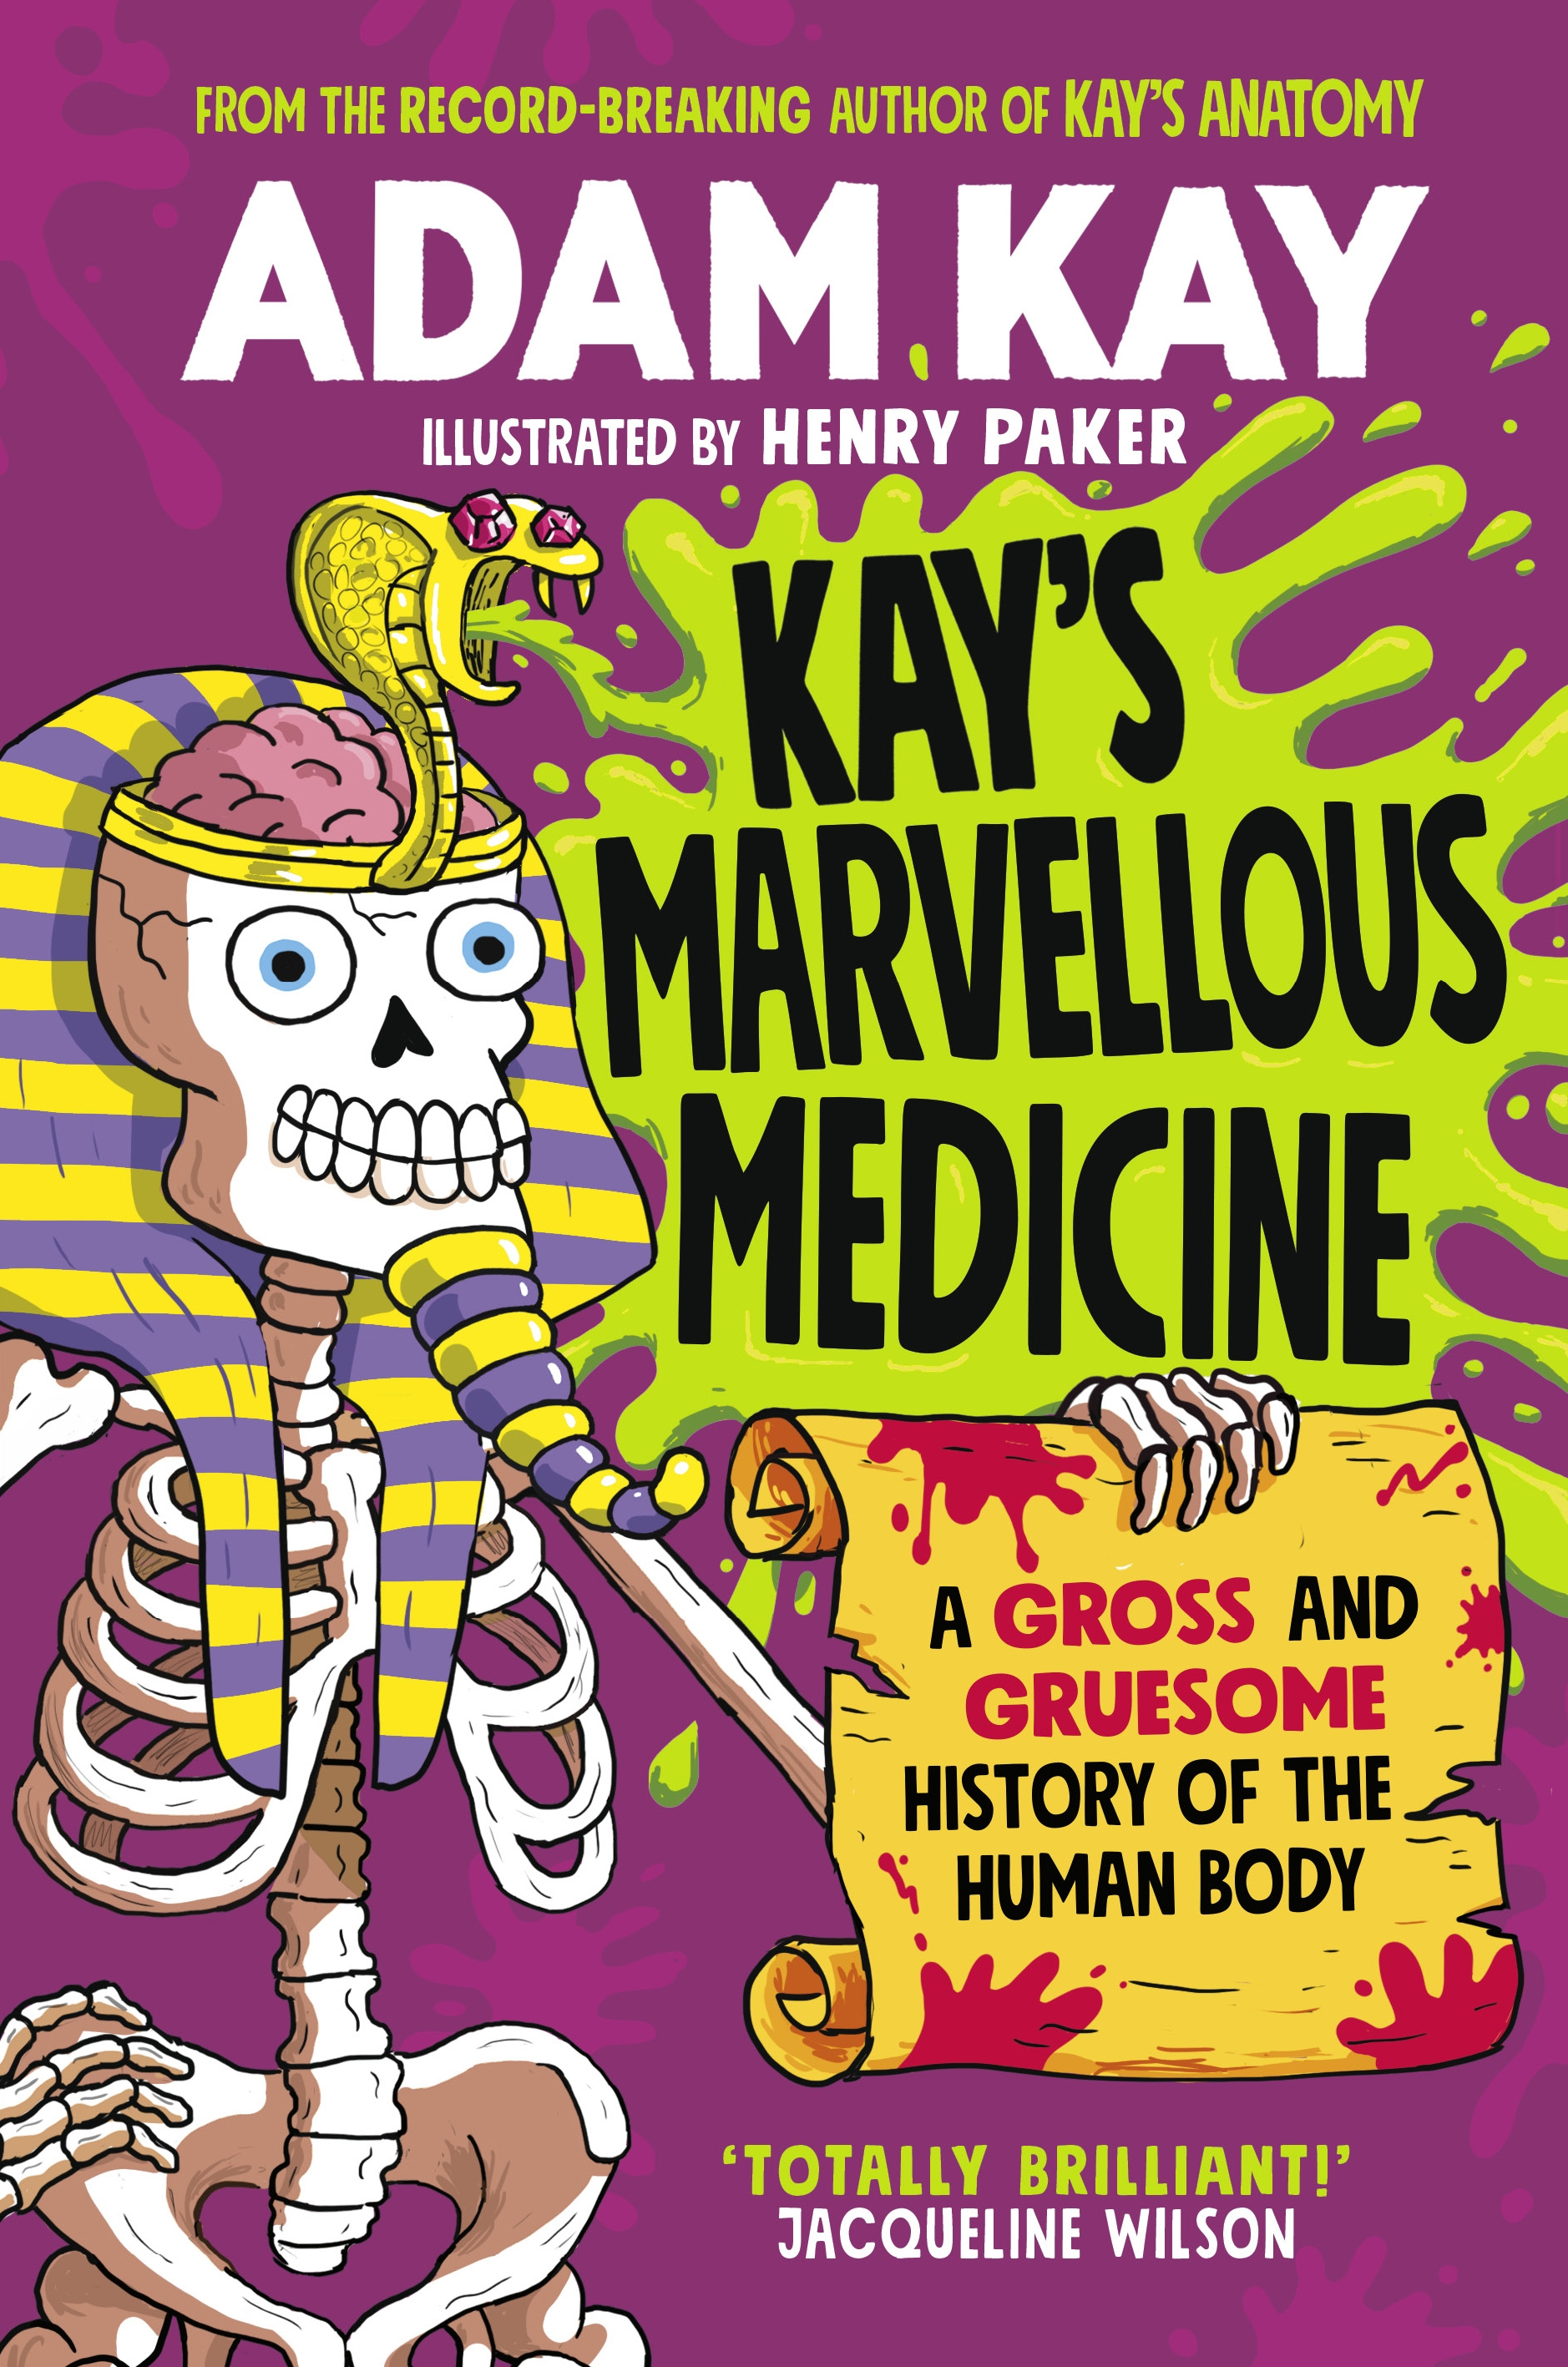 Kay's Marvellous Medicine: A Gross and Gruesome History of the Human Body by Adam Kay